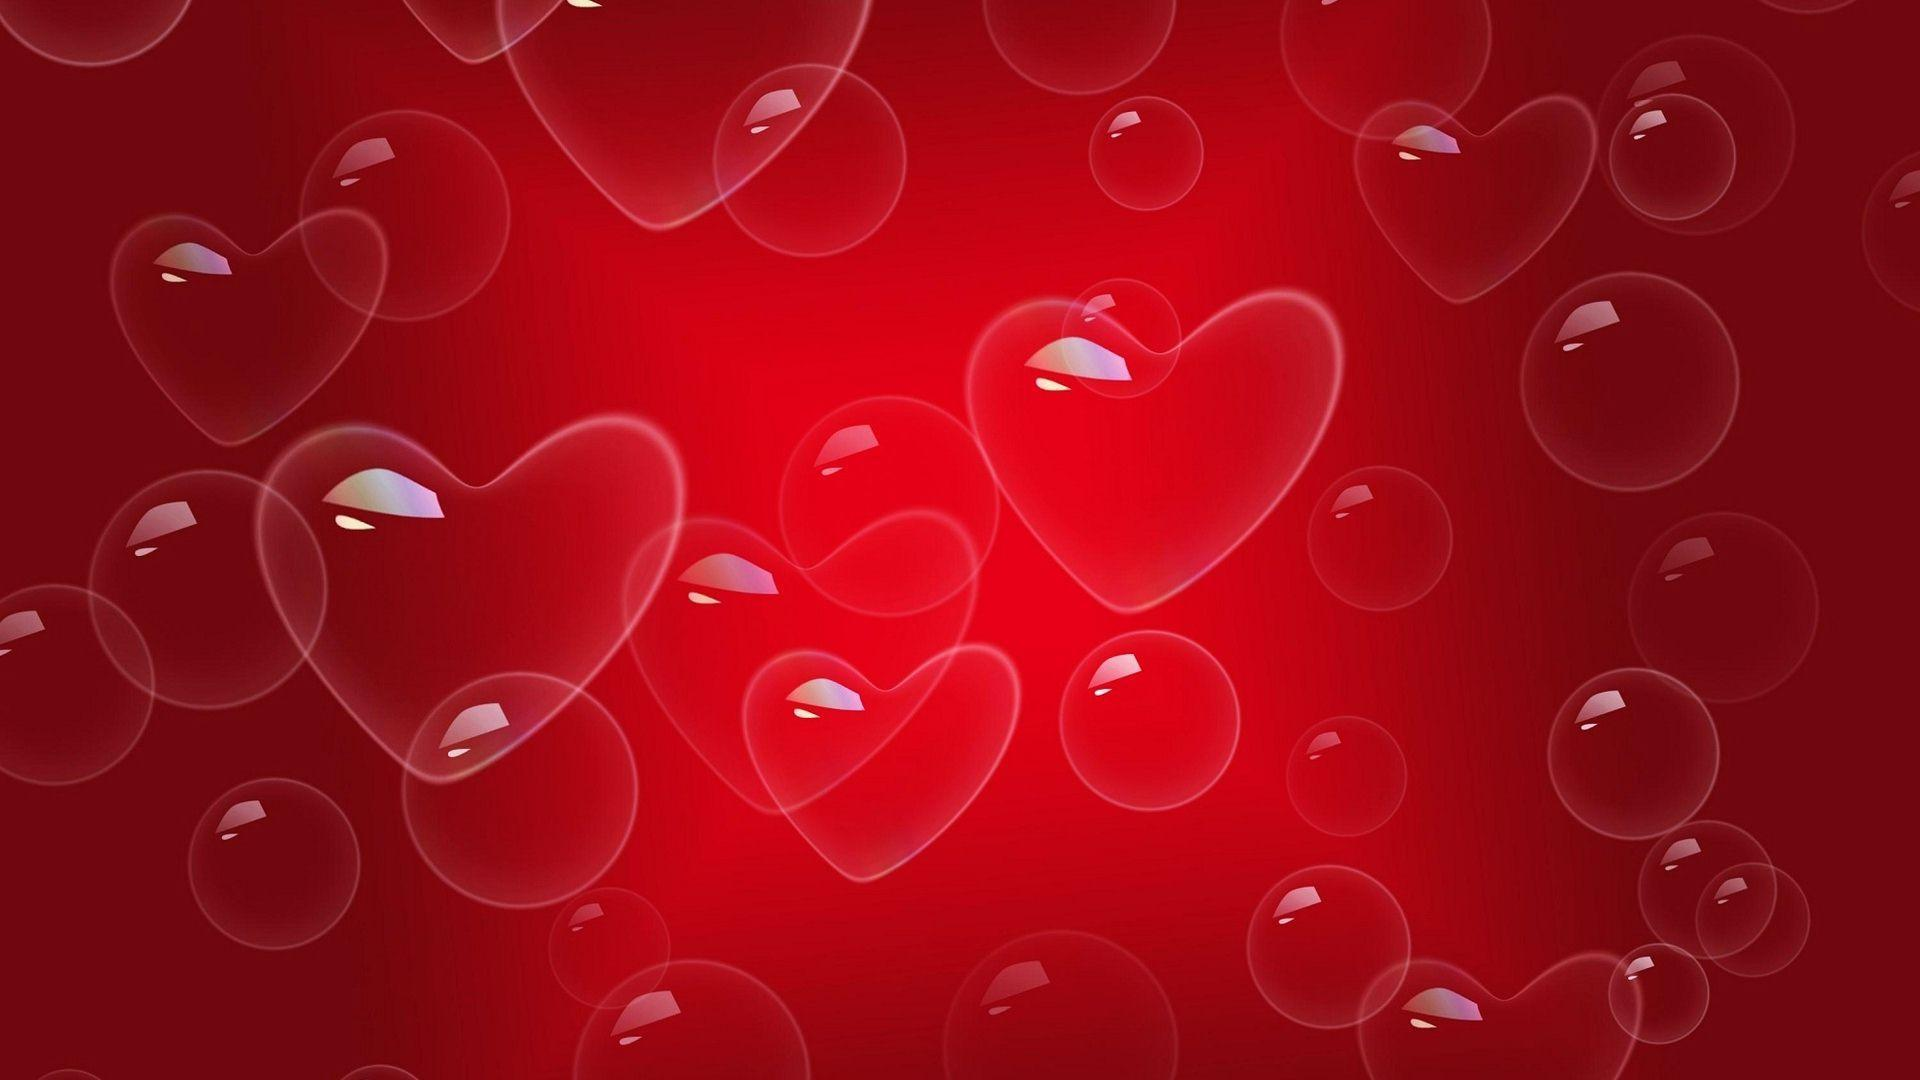 Red Love Wallpaper Hd : Red Love Heart Backgrounds - Wallpaper cave